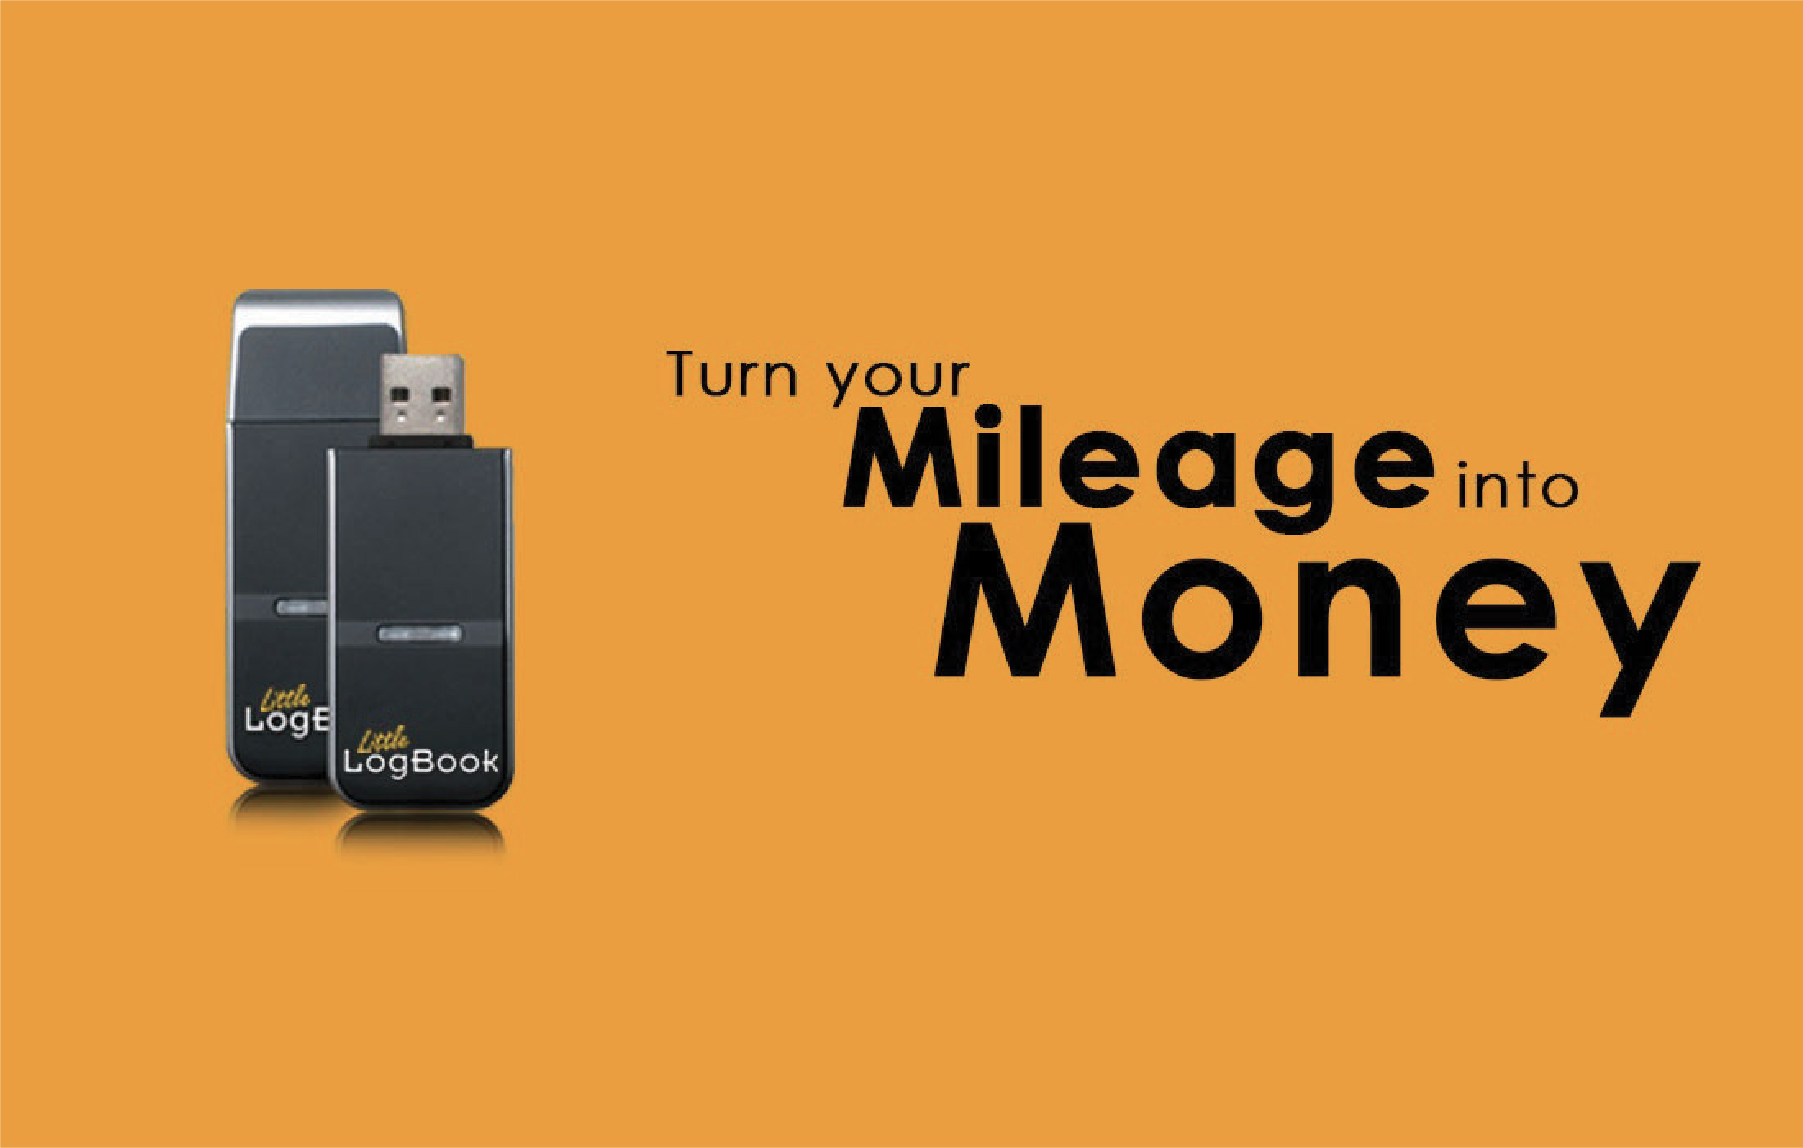 Turn-Your-Mileage-Into-Money-With-Little-LogBook